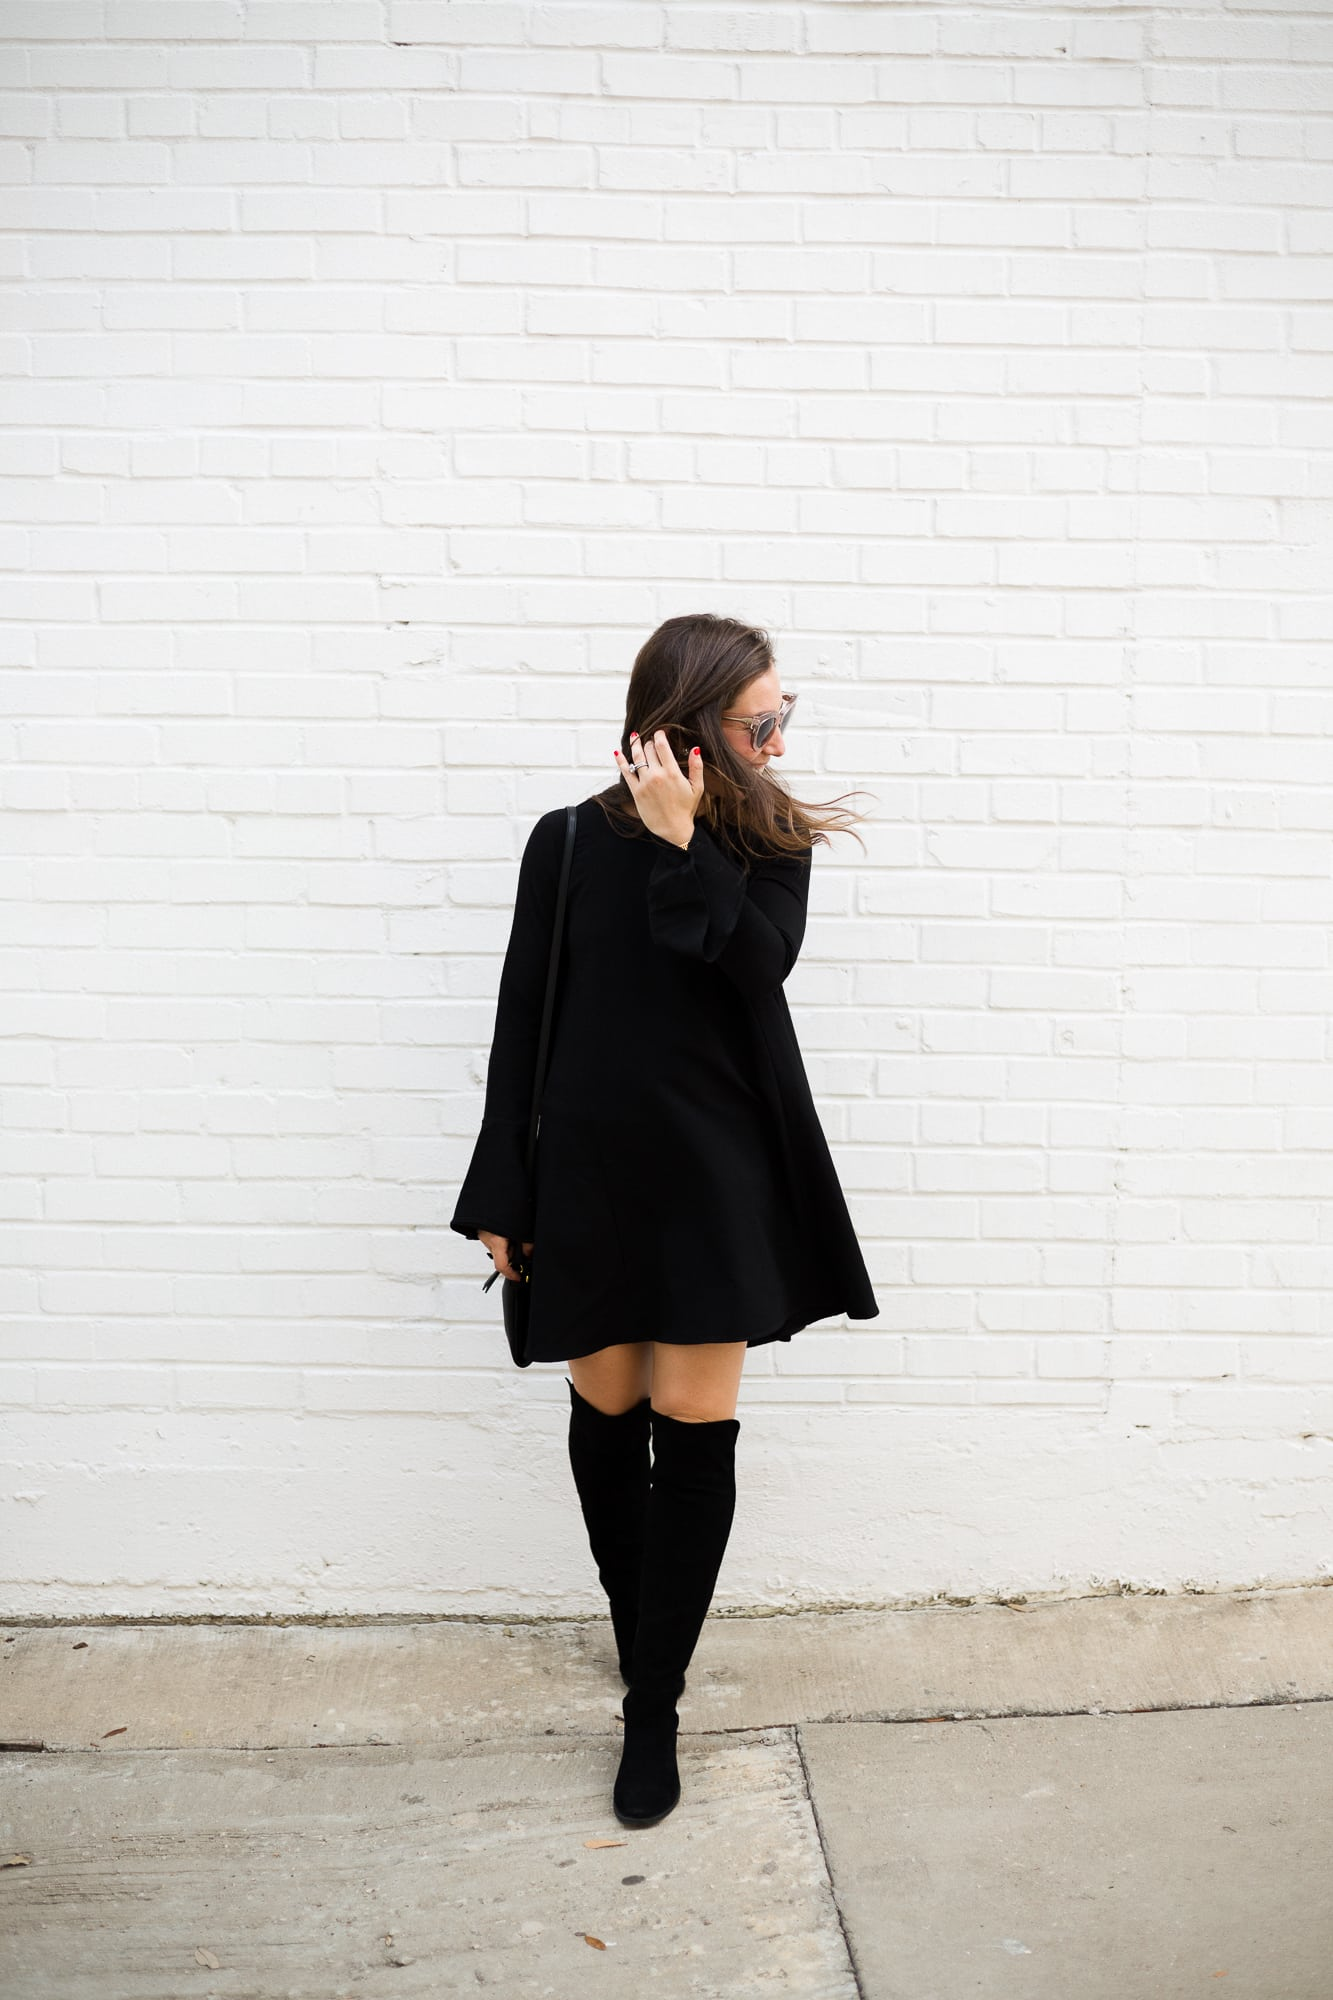 Black Flare Dress from Shopbop